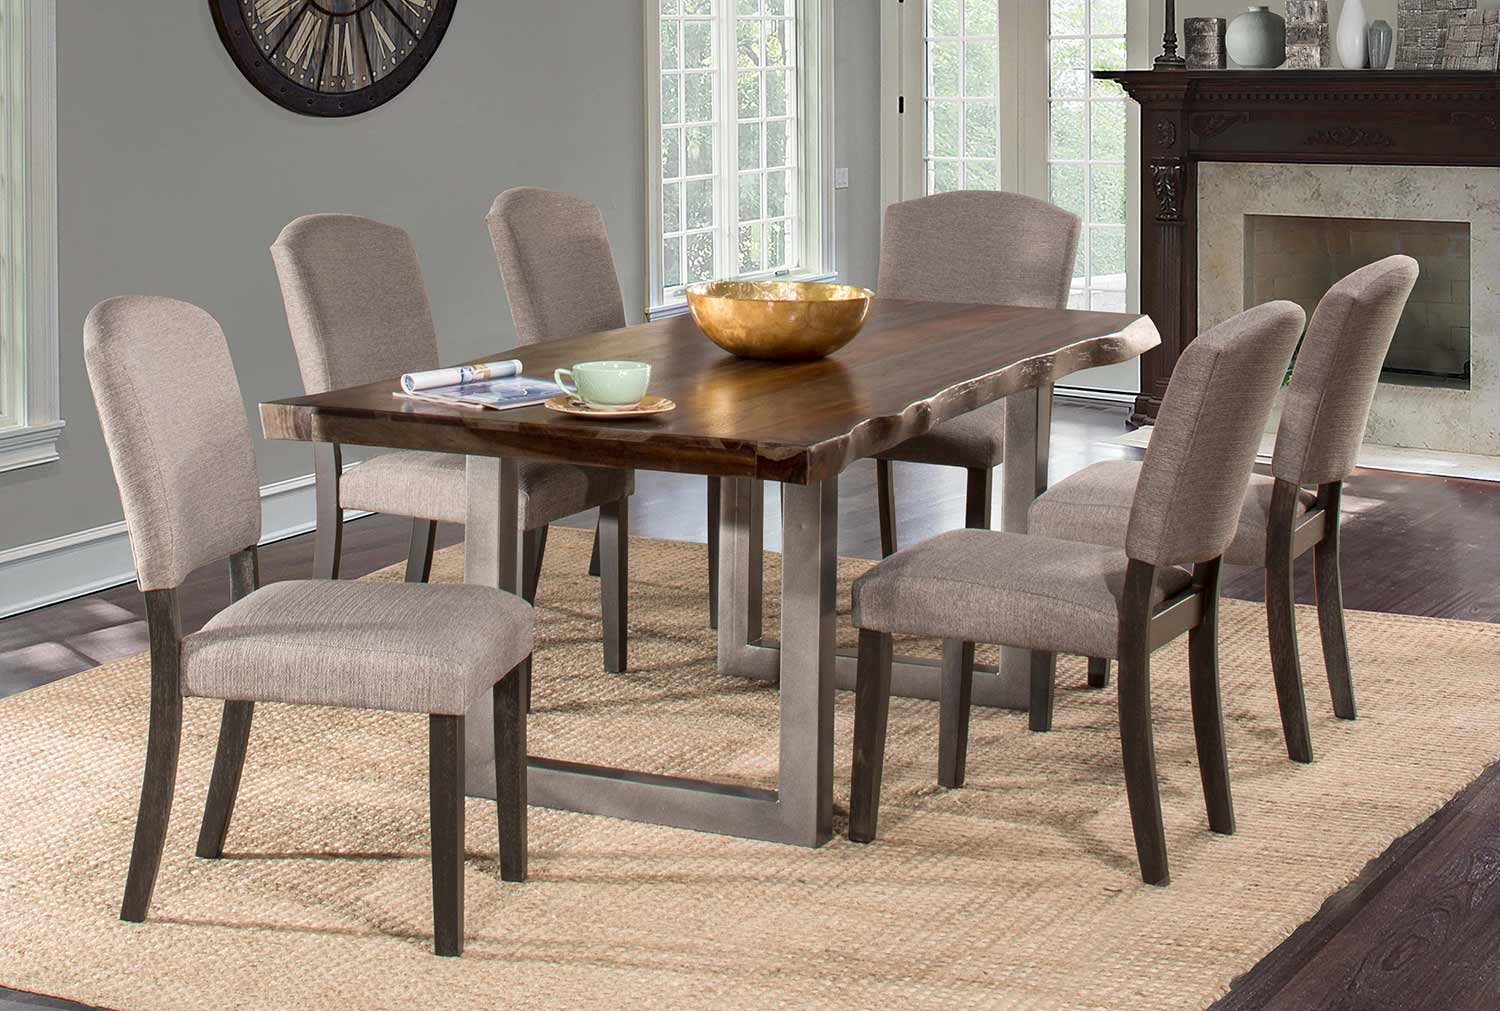 Hillsdale Emerson 7-Piece Rectangle Dining Set - Gray Sheesham/Gray Powder